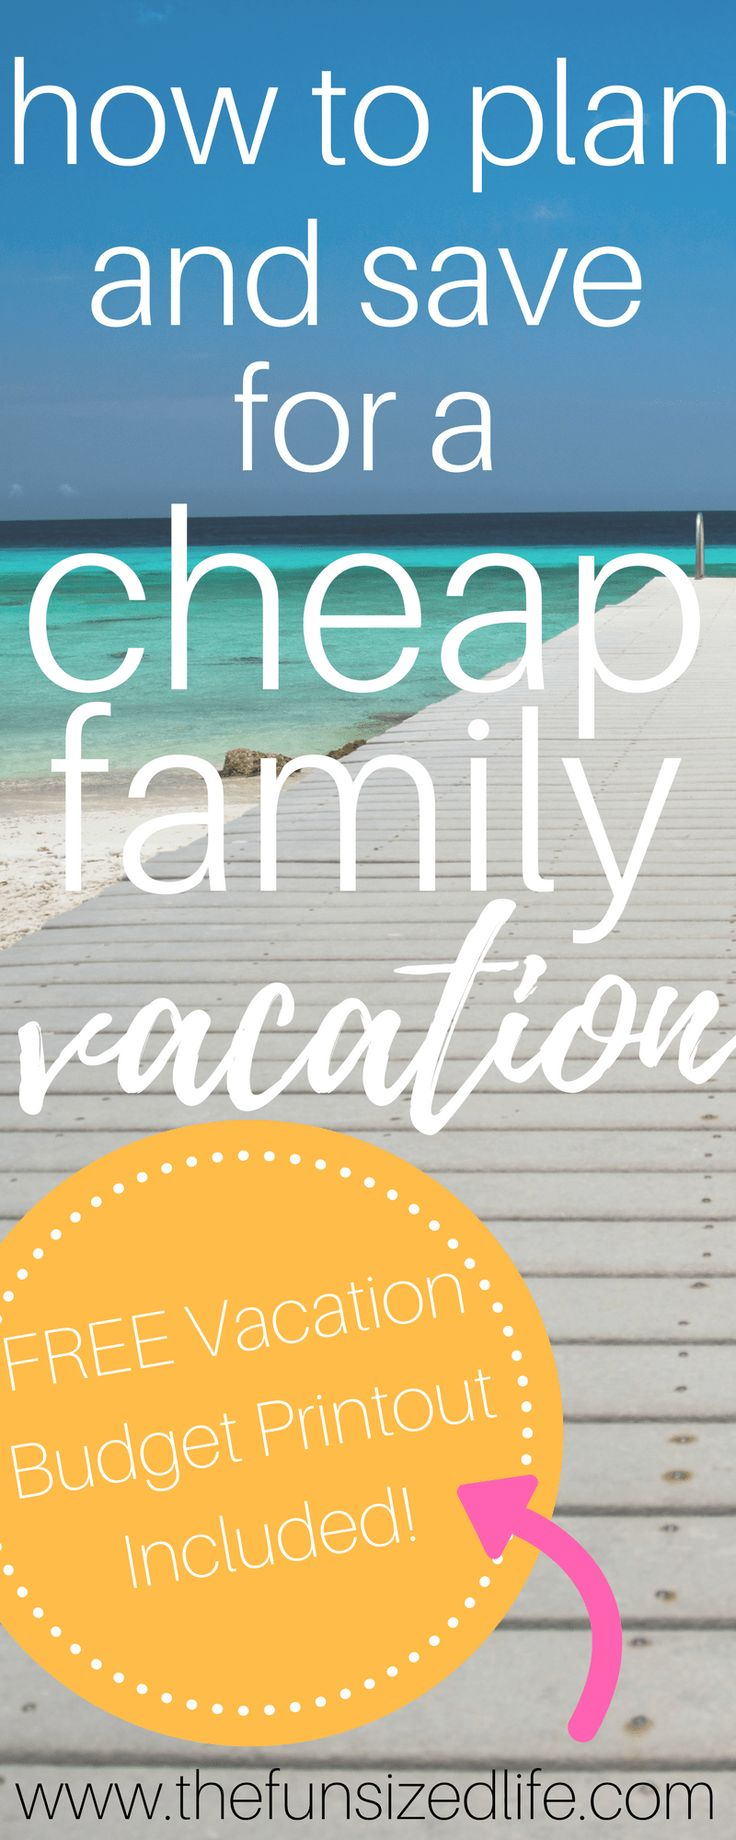 family vacation, vacation, san diego, vacation with kids, cheap vacation, planning vacation, vacation budgetfamily vacation, vacation, san diego, vacation with kids, cheap vacation, planning vacation, vacation budget